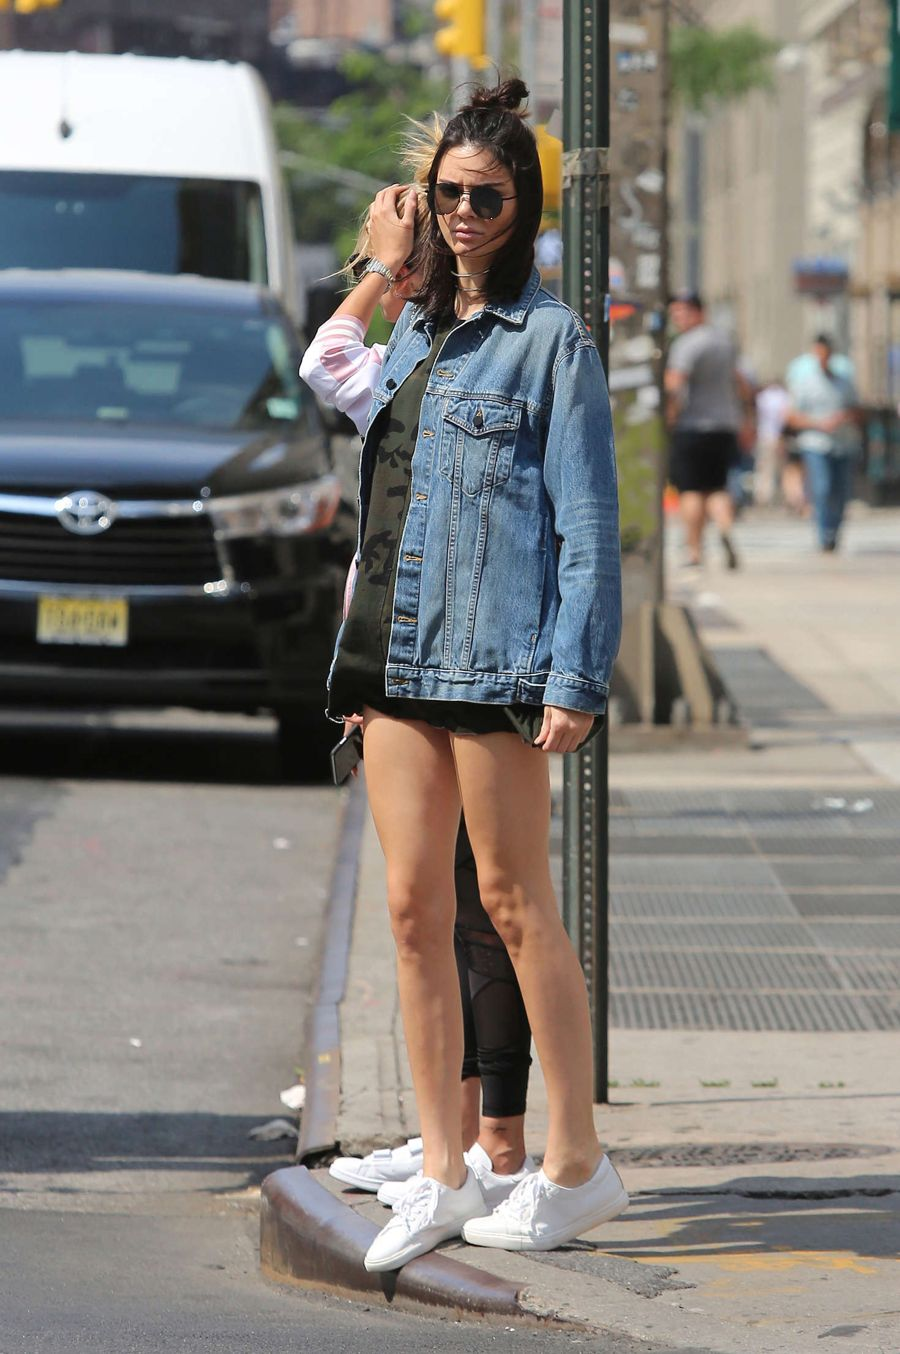 Kendall Jenner in Denim Shorts as she Roams in New York